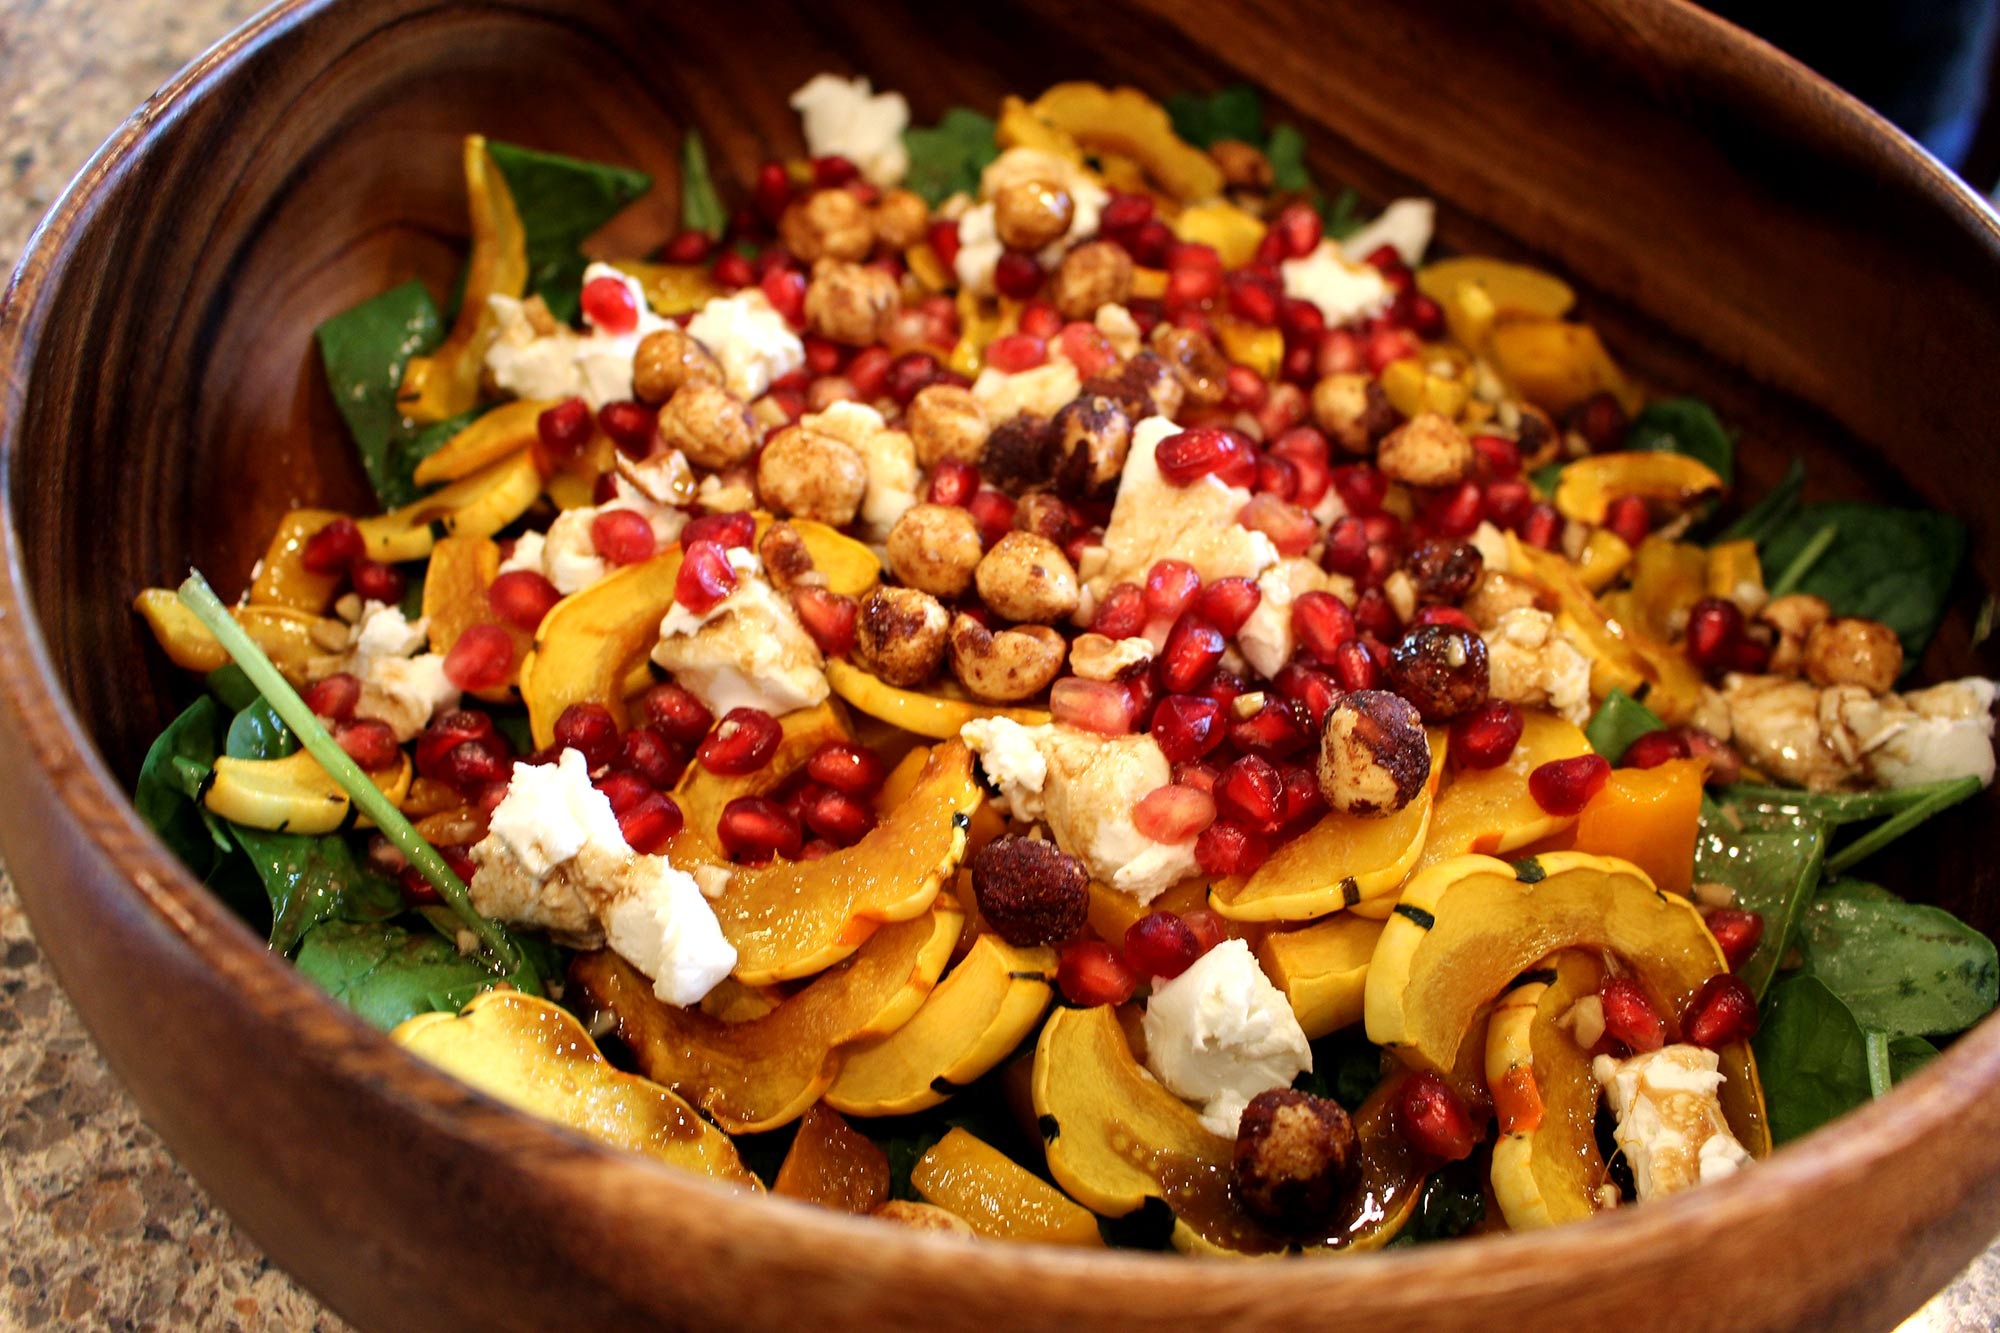 Roasted Squash Salad with Goat Cheese